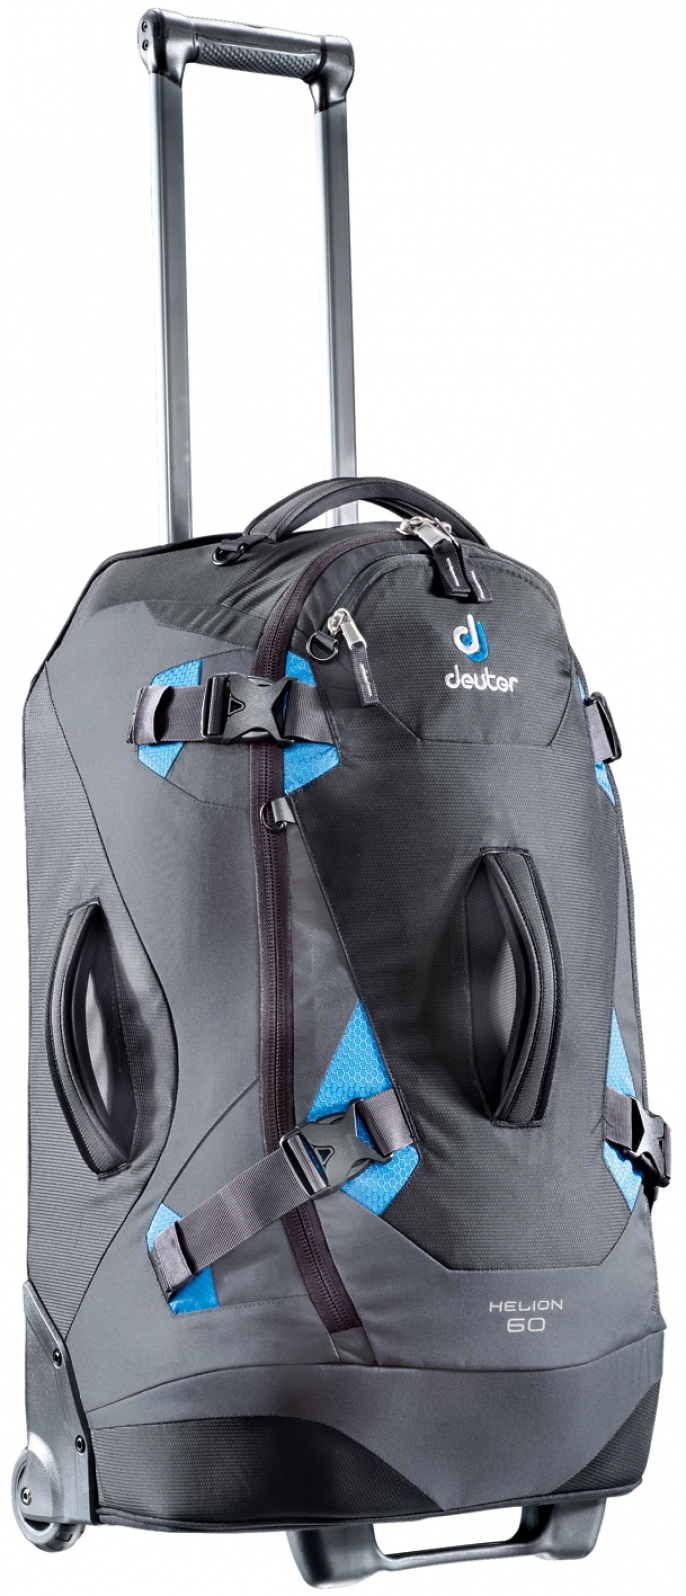 DEUTER: Deuter Helion 60 - small 1